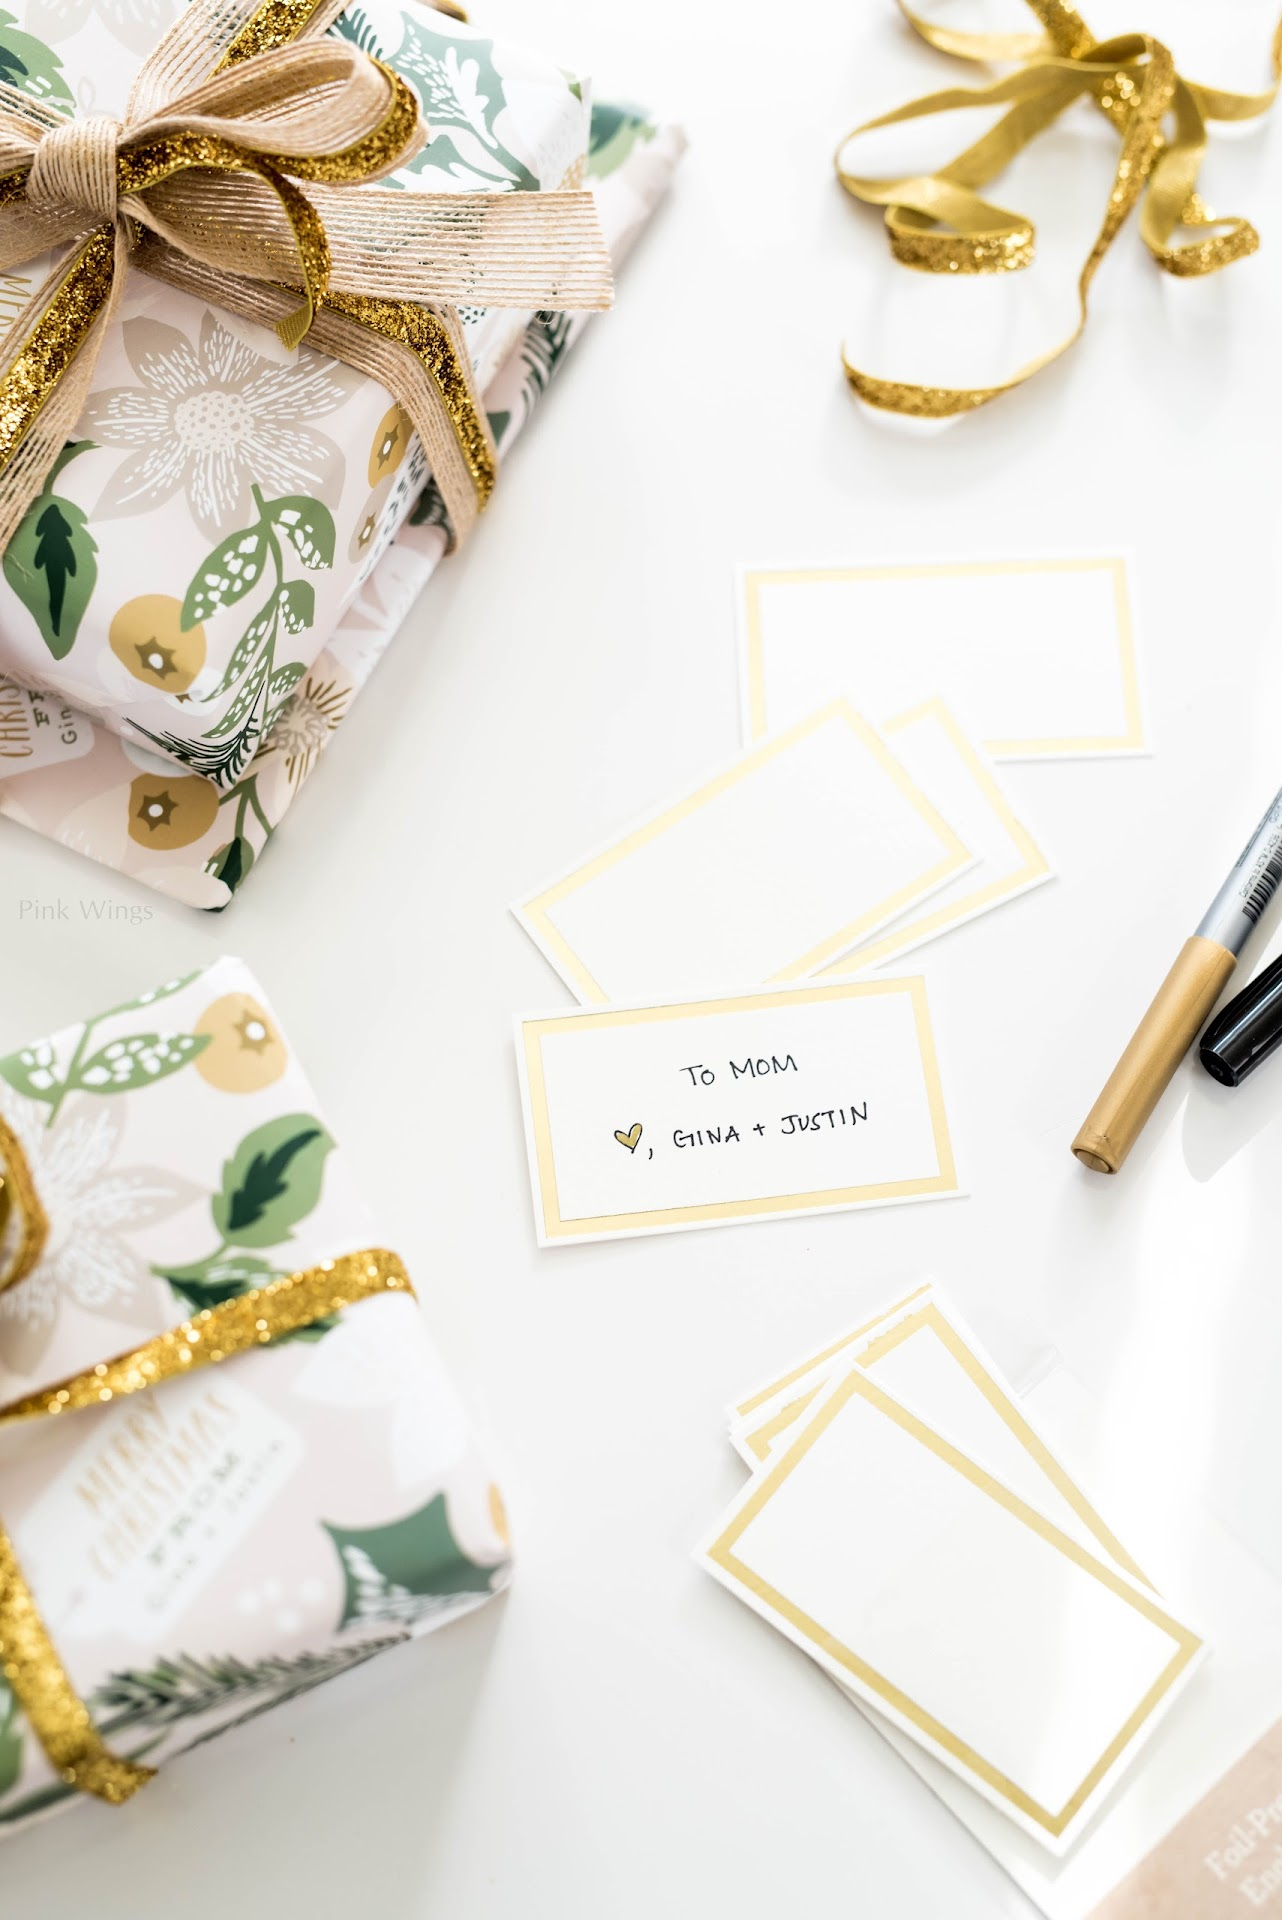 personalized gifts, gifts for people who are hard to shop for, gifts for anyone, custom gifts, personalized stationery, pretty gift wrapping, gold gift wrapping, gold ribbon, jute burlap ribbon, classy holiday wrapping paper, gold gift cards tags